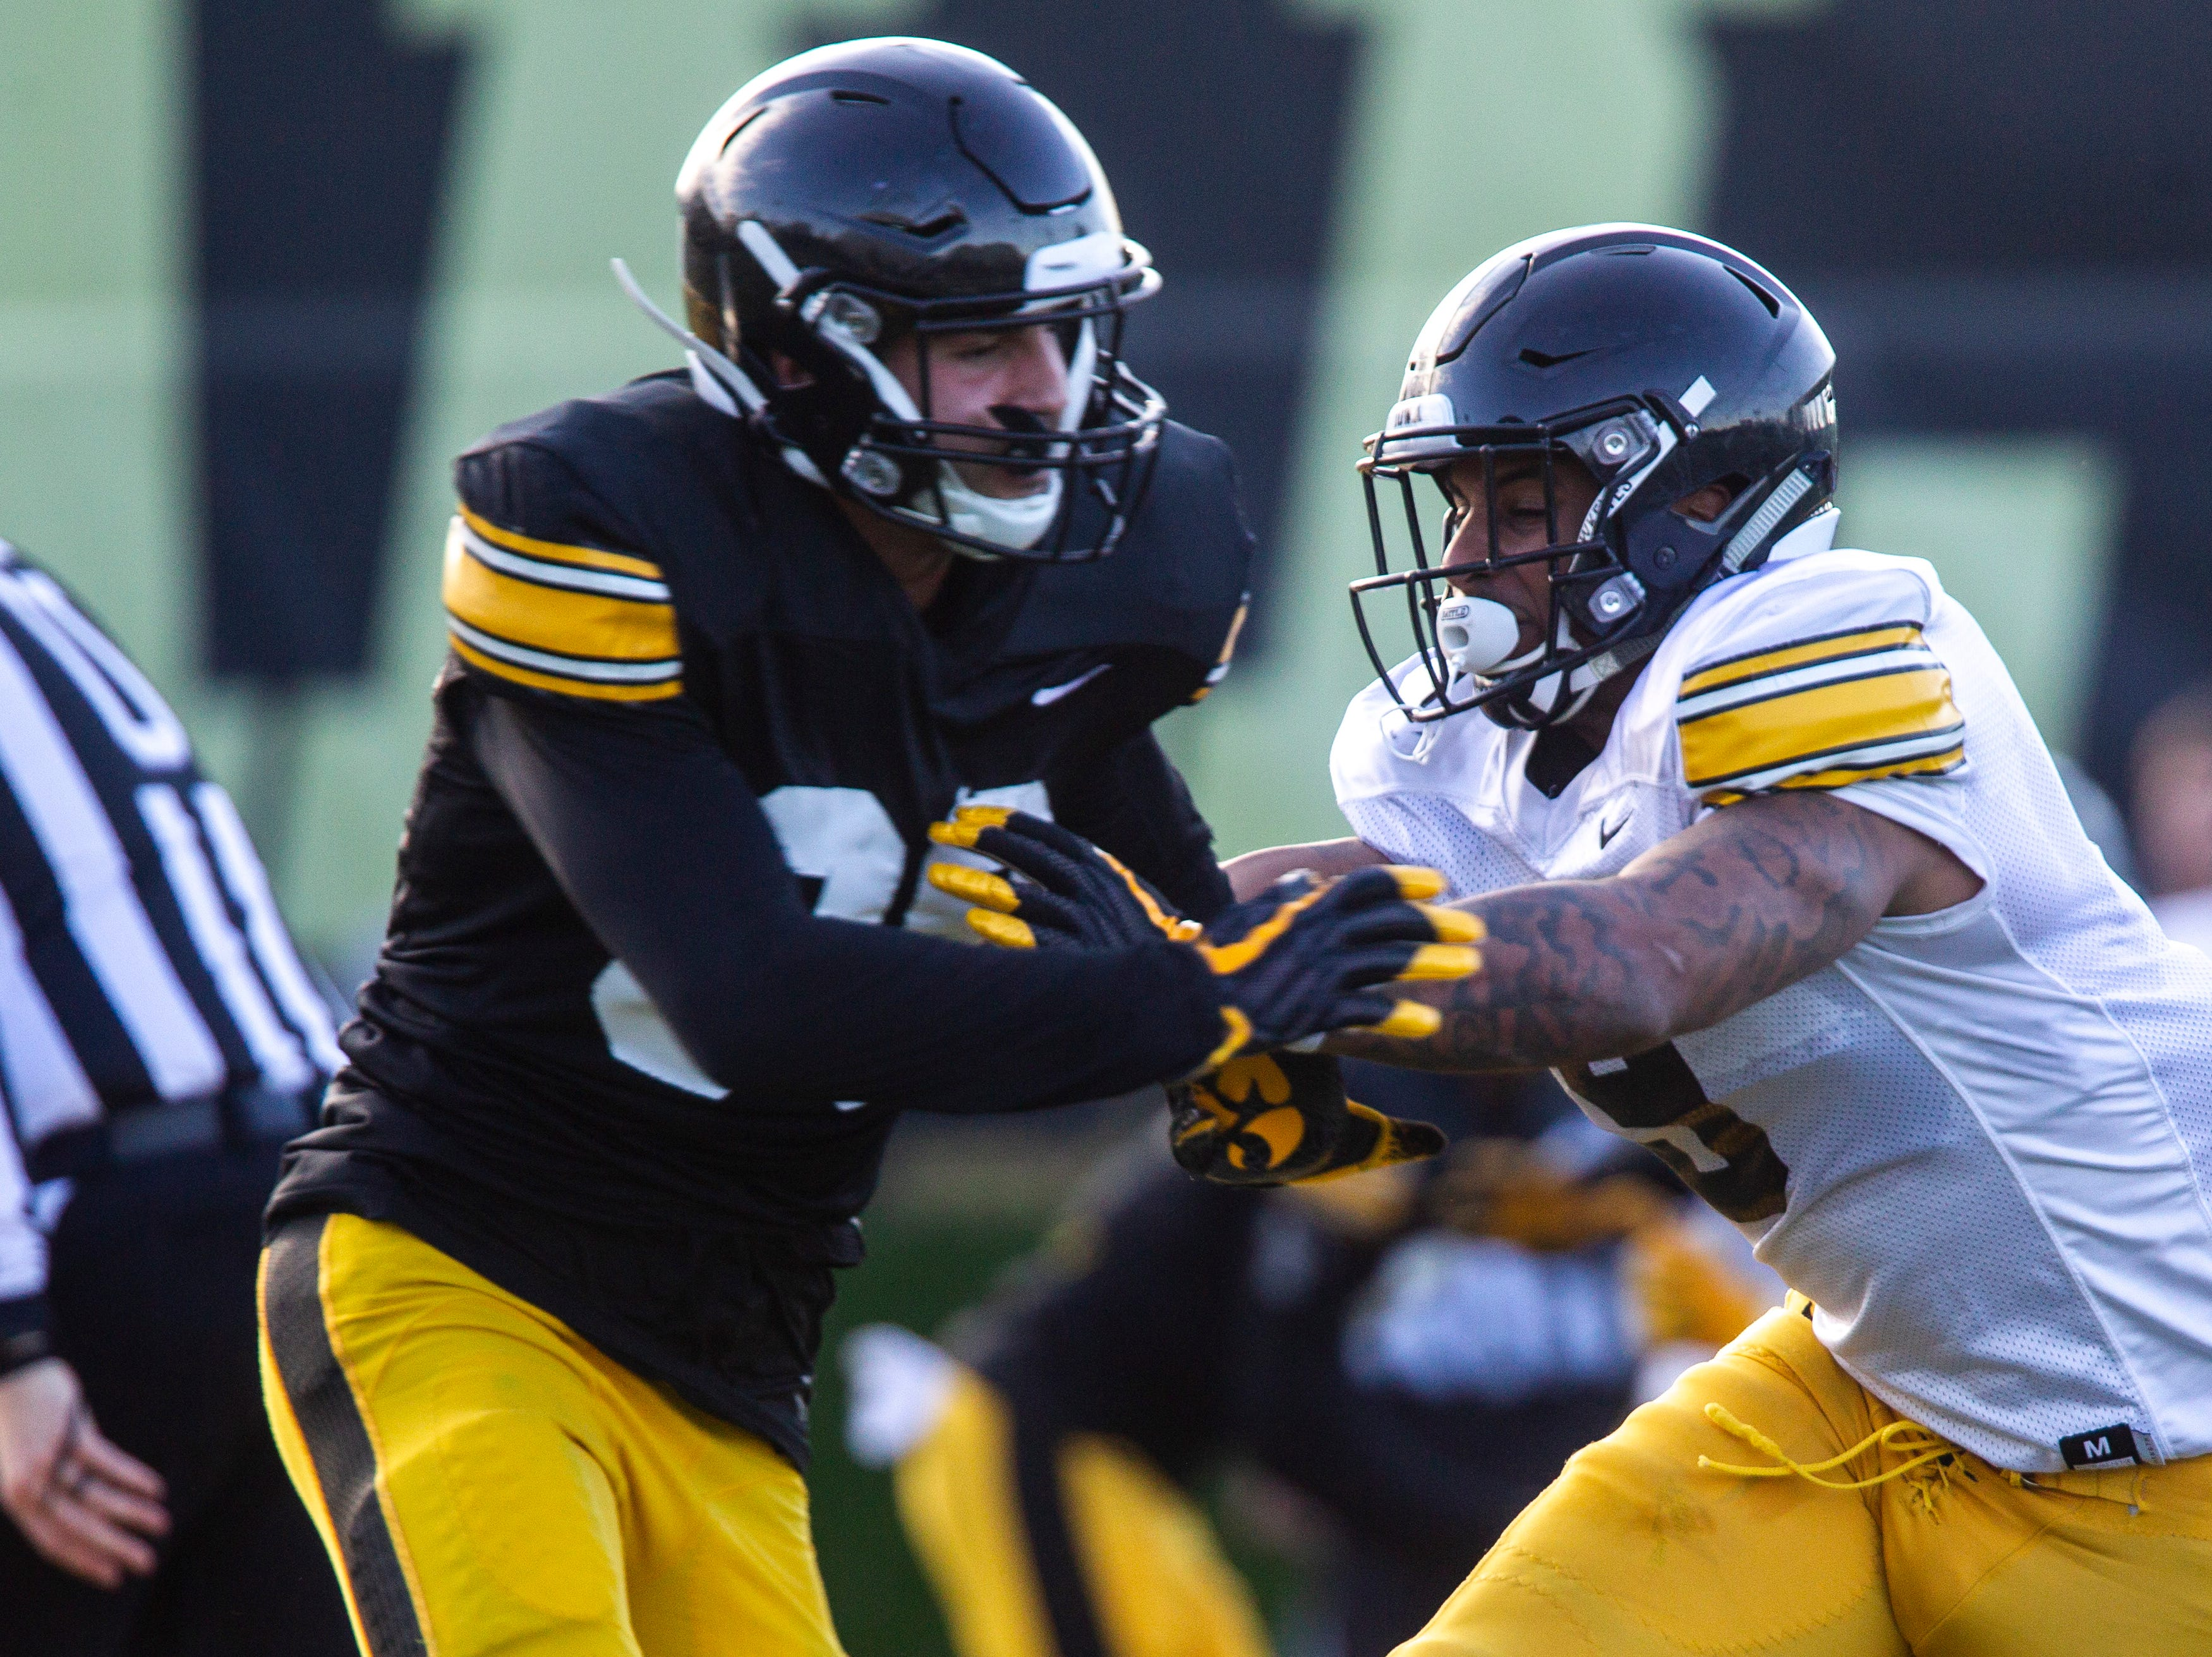 Iowa defensive back Geno Stone (9) defends wide receiver Nico Ragaini (89) during the final spring football practice, Friday, April 26, 2019, at the University of Iowa outdoor practice facility in Iowa City, Iowa.